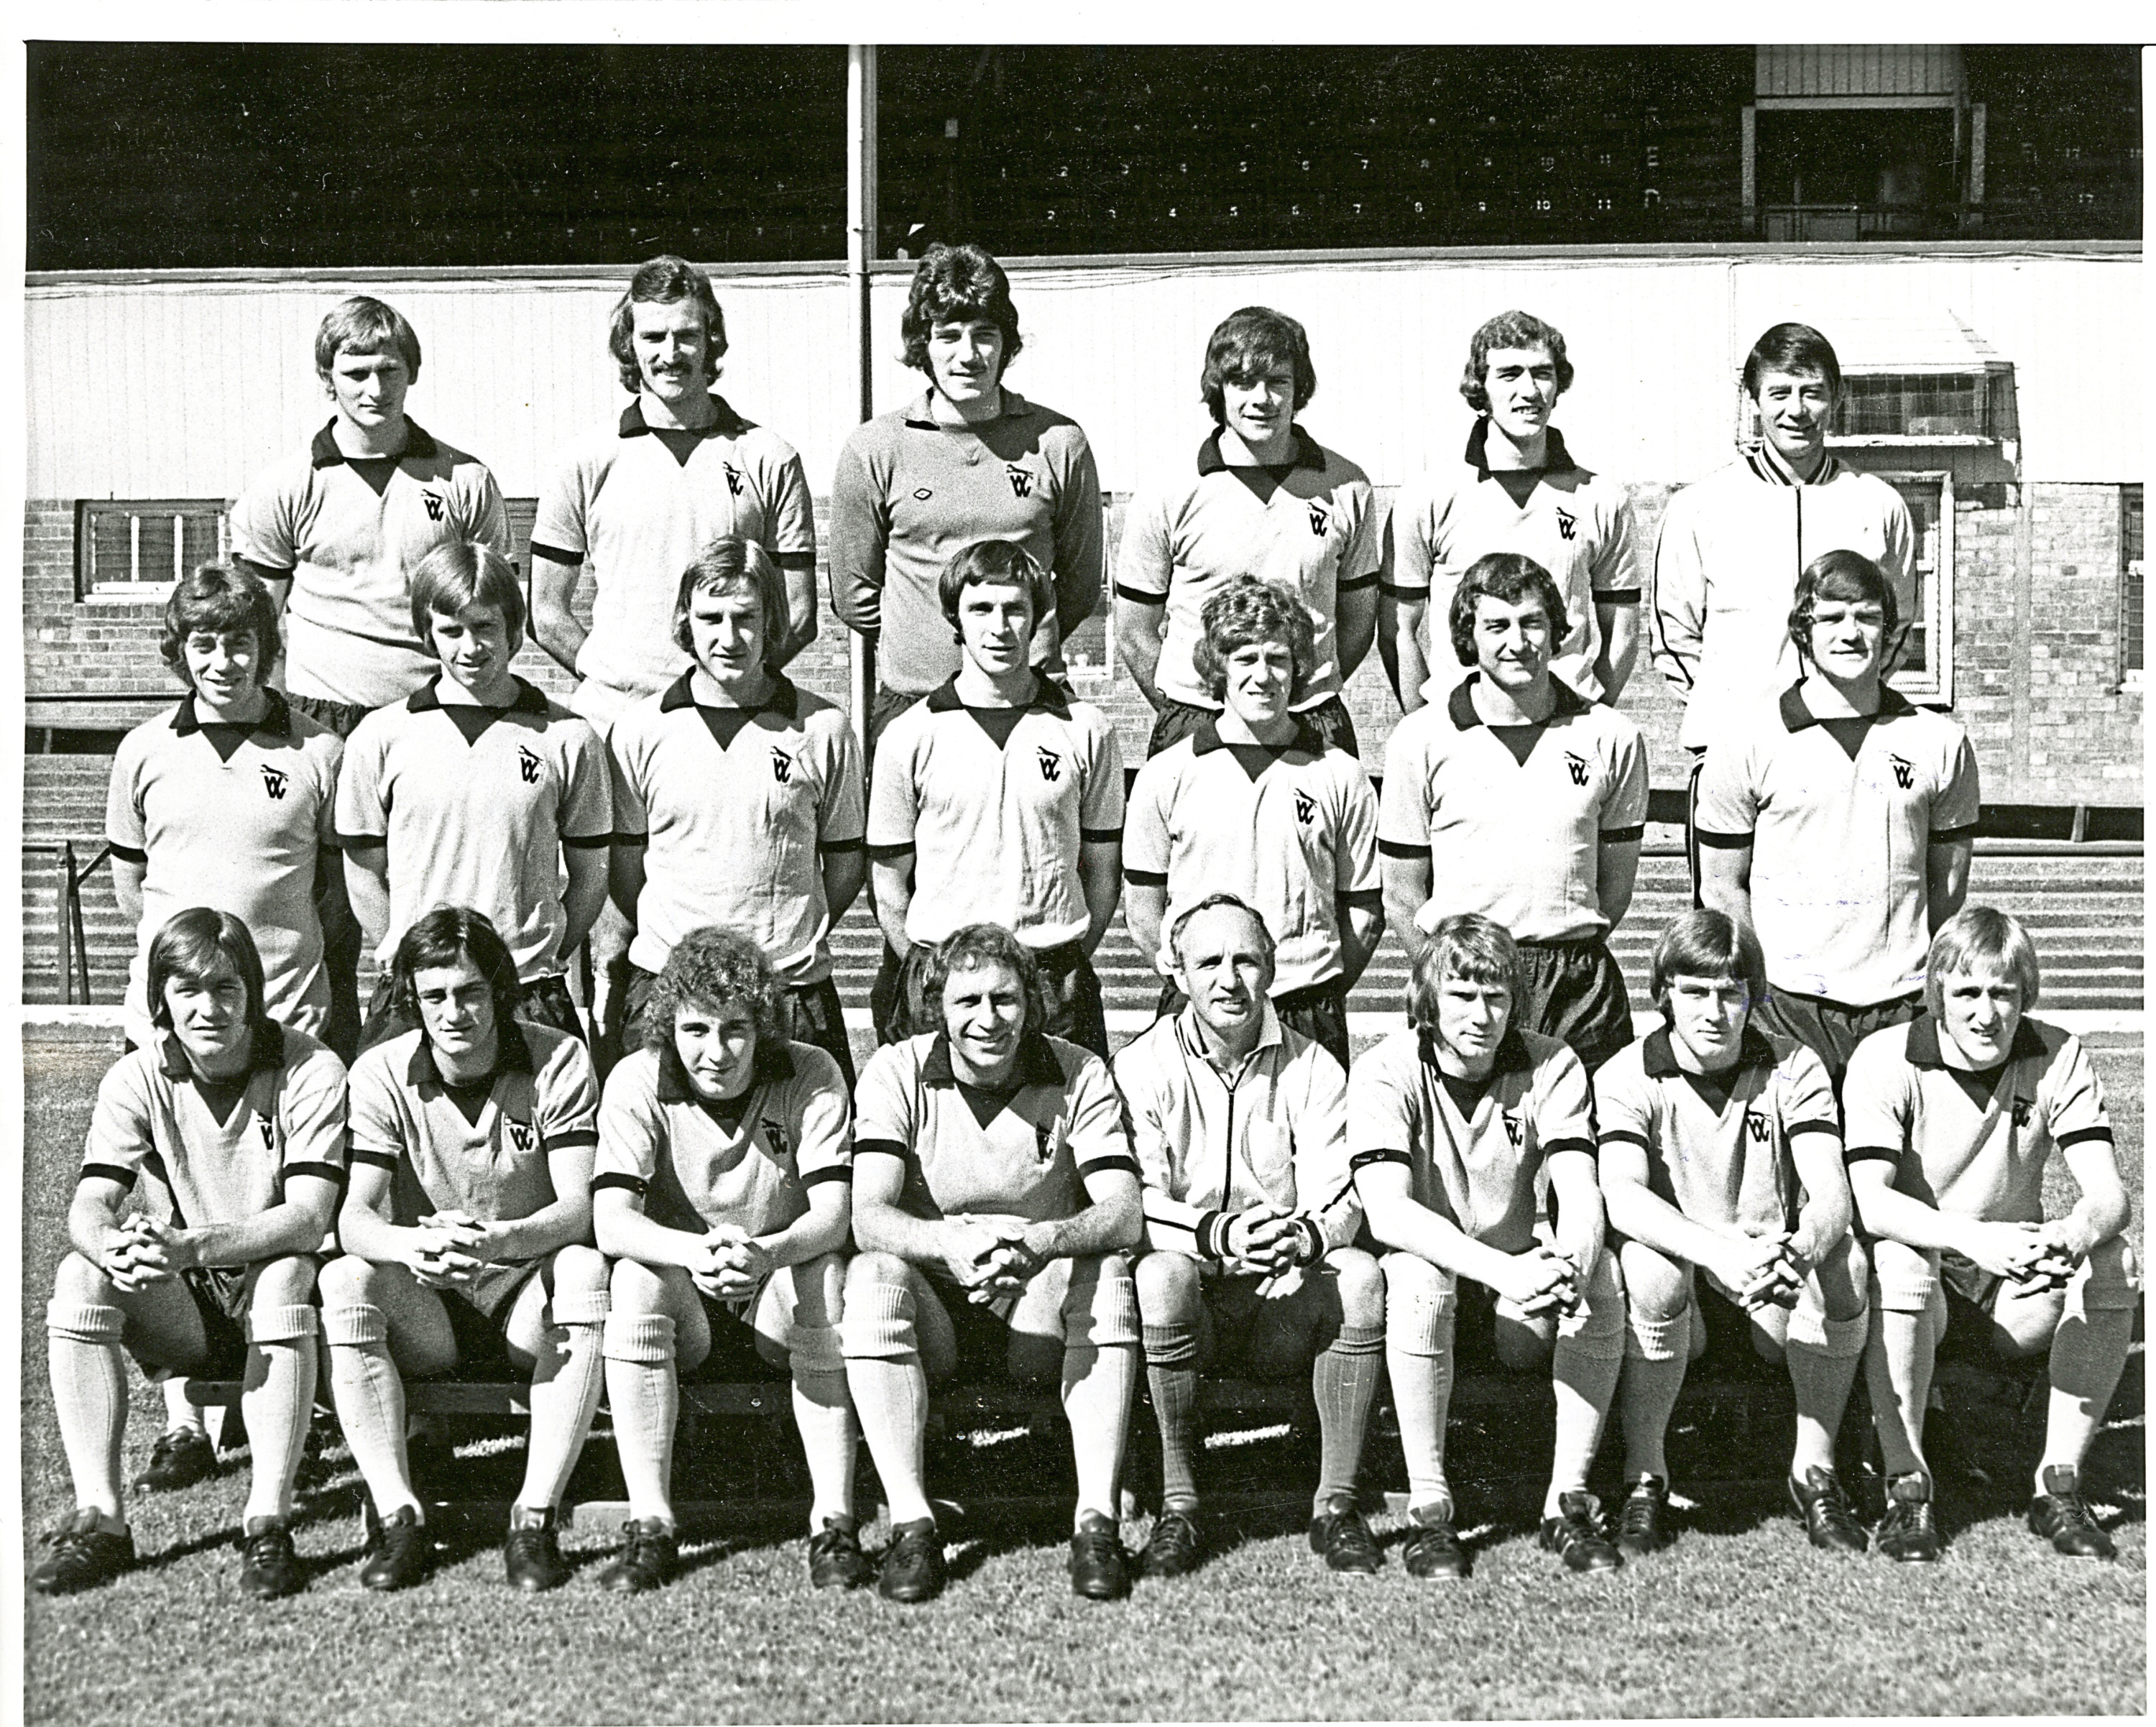 This Wolverhampton Wanderers first-team squad photo was taken in October 1972 and contains some of the players who played against East Fife (see main story). Back row (from left) – Kindon, Dougan, Parkes, Munro, McAlle, Sammy Chung (trainer). Middle row – Hegan, Eastoe, Daley, Taylor, Shaw, O'Grady, Curren. Front row – McCalliog, Hibbitt, Sunderland, Bailey, McGarry (manager), Wagstaff, Richards, Parkin